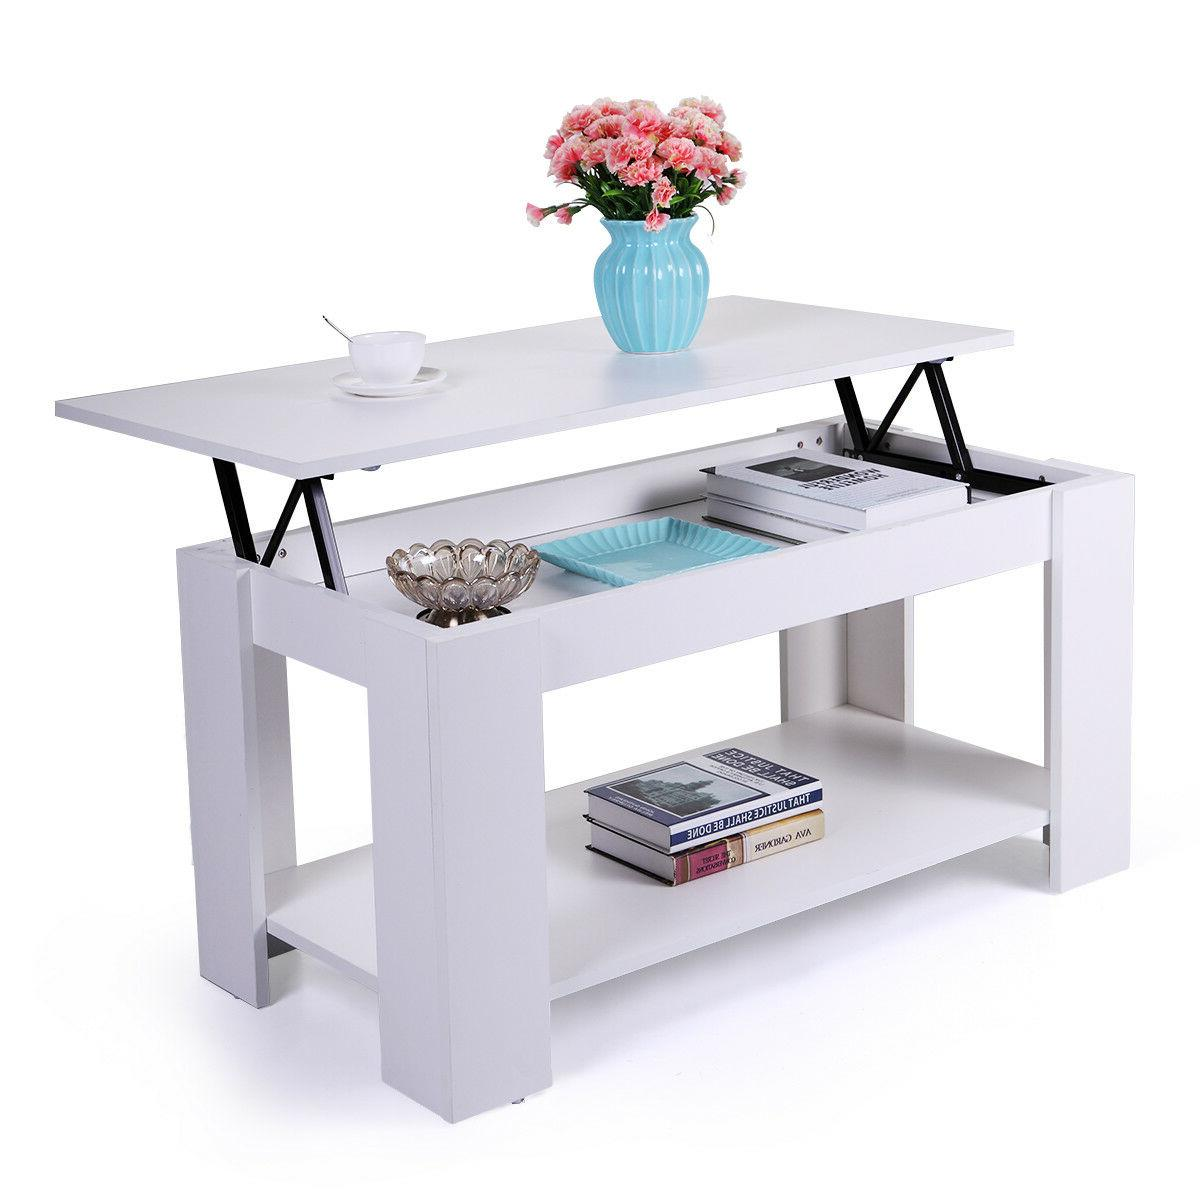 Wood Top Table Space White Furniture